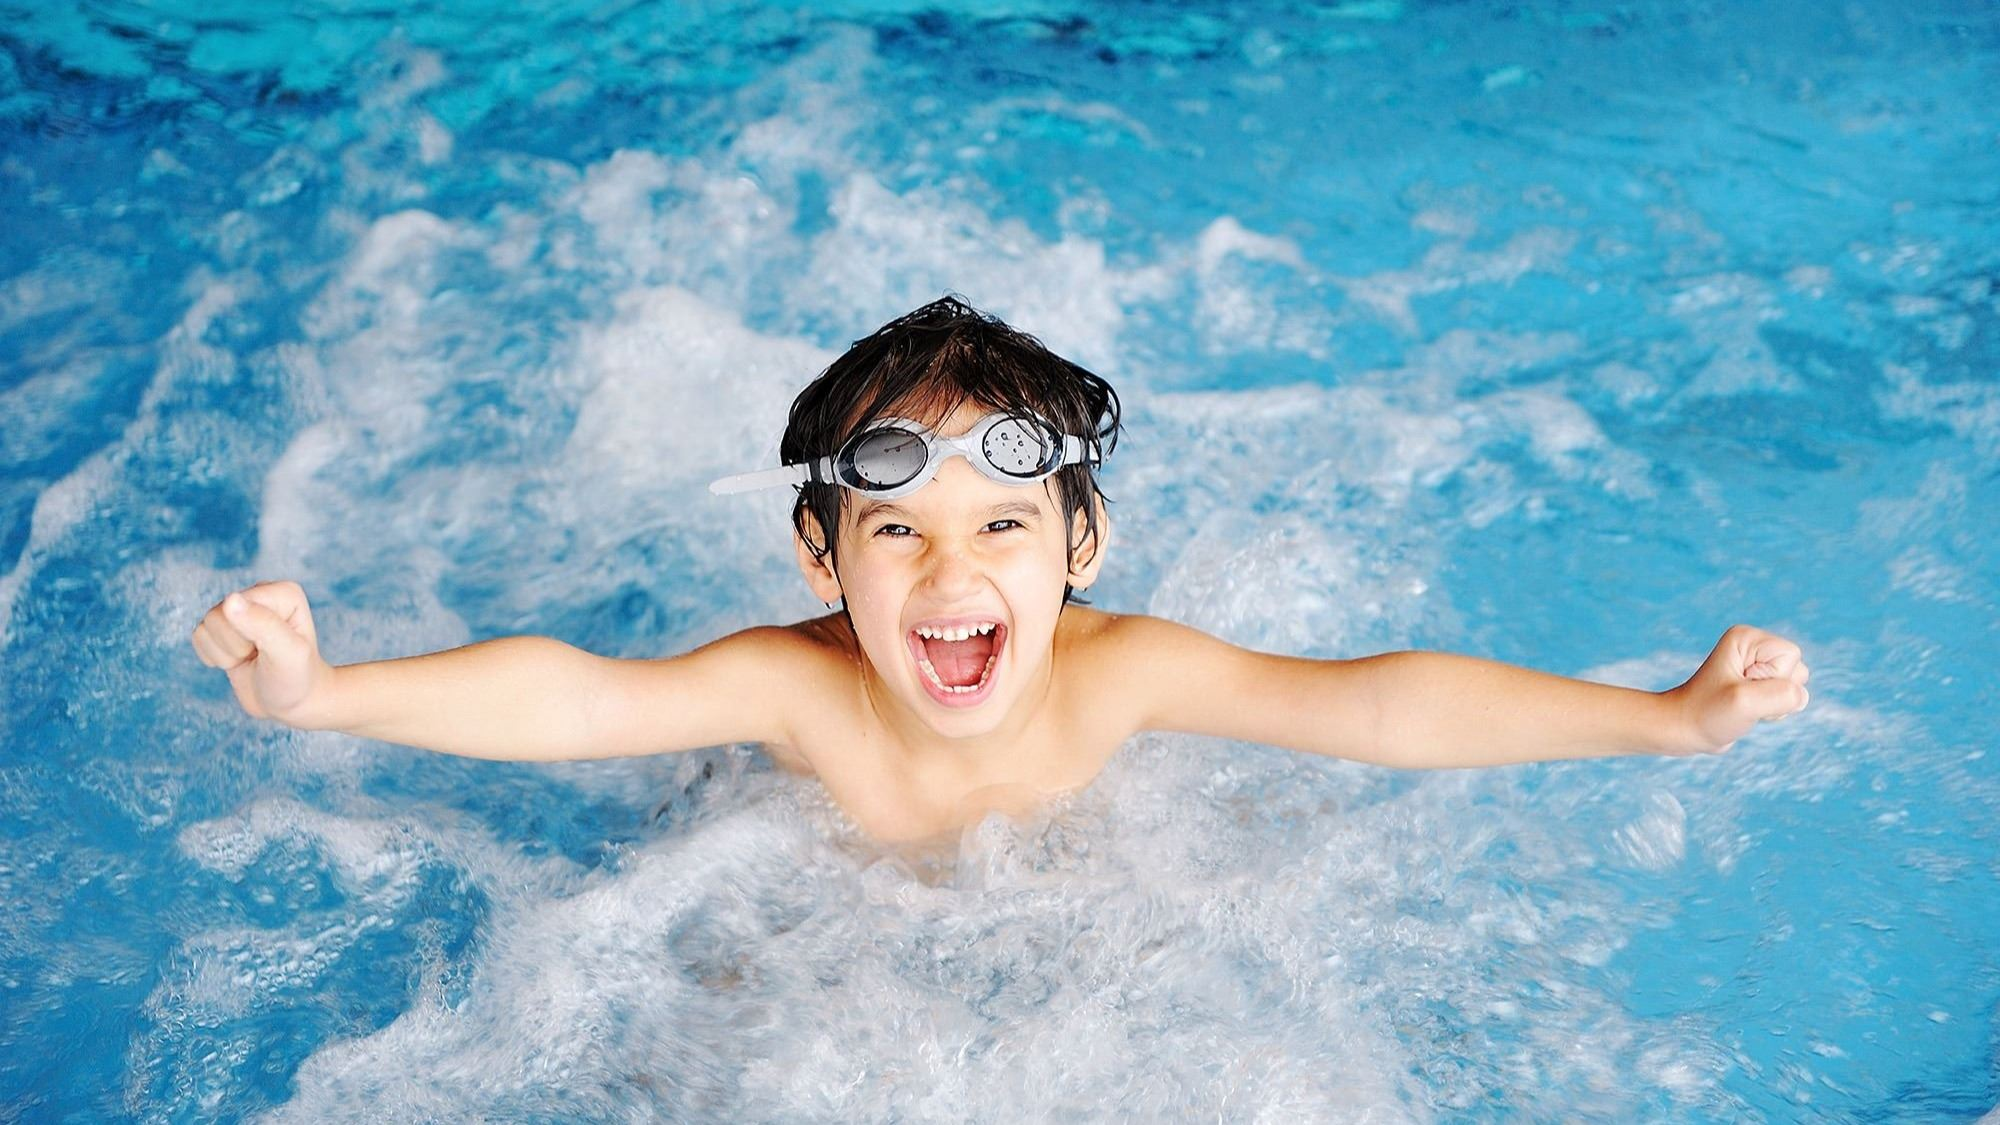 Boy splashing in pool with goggles on his head.